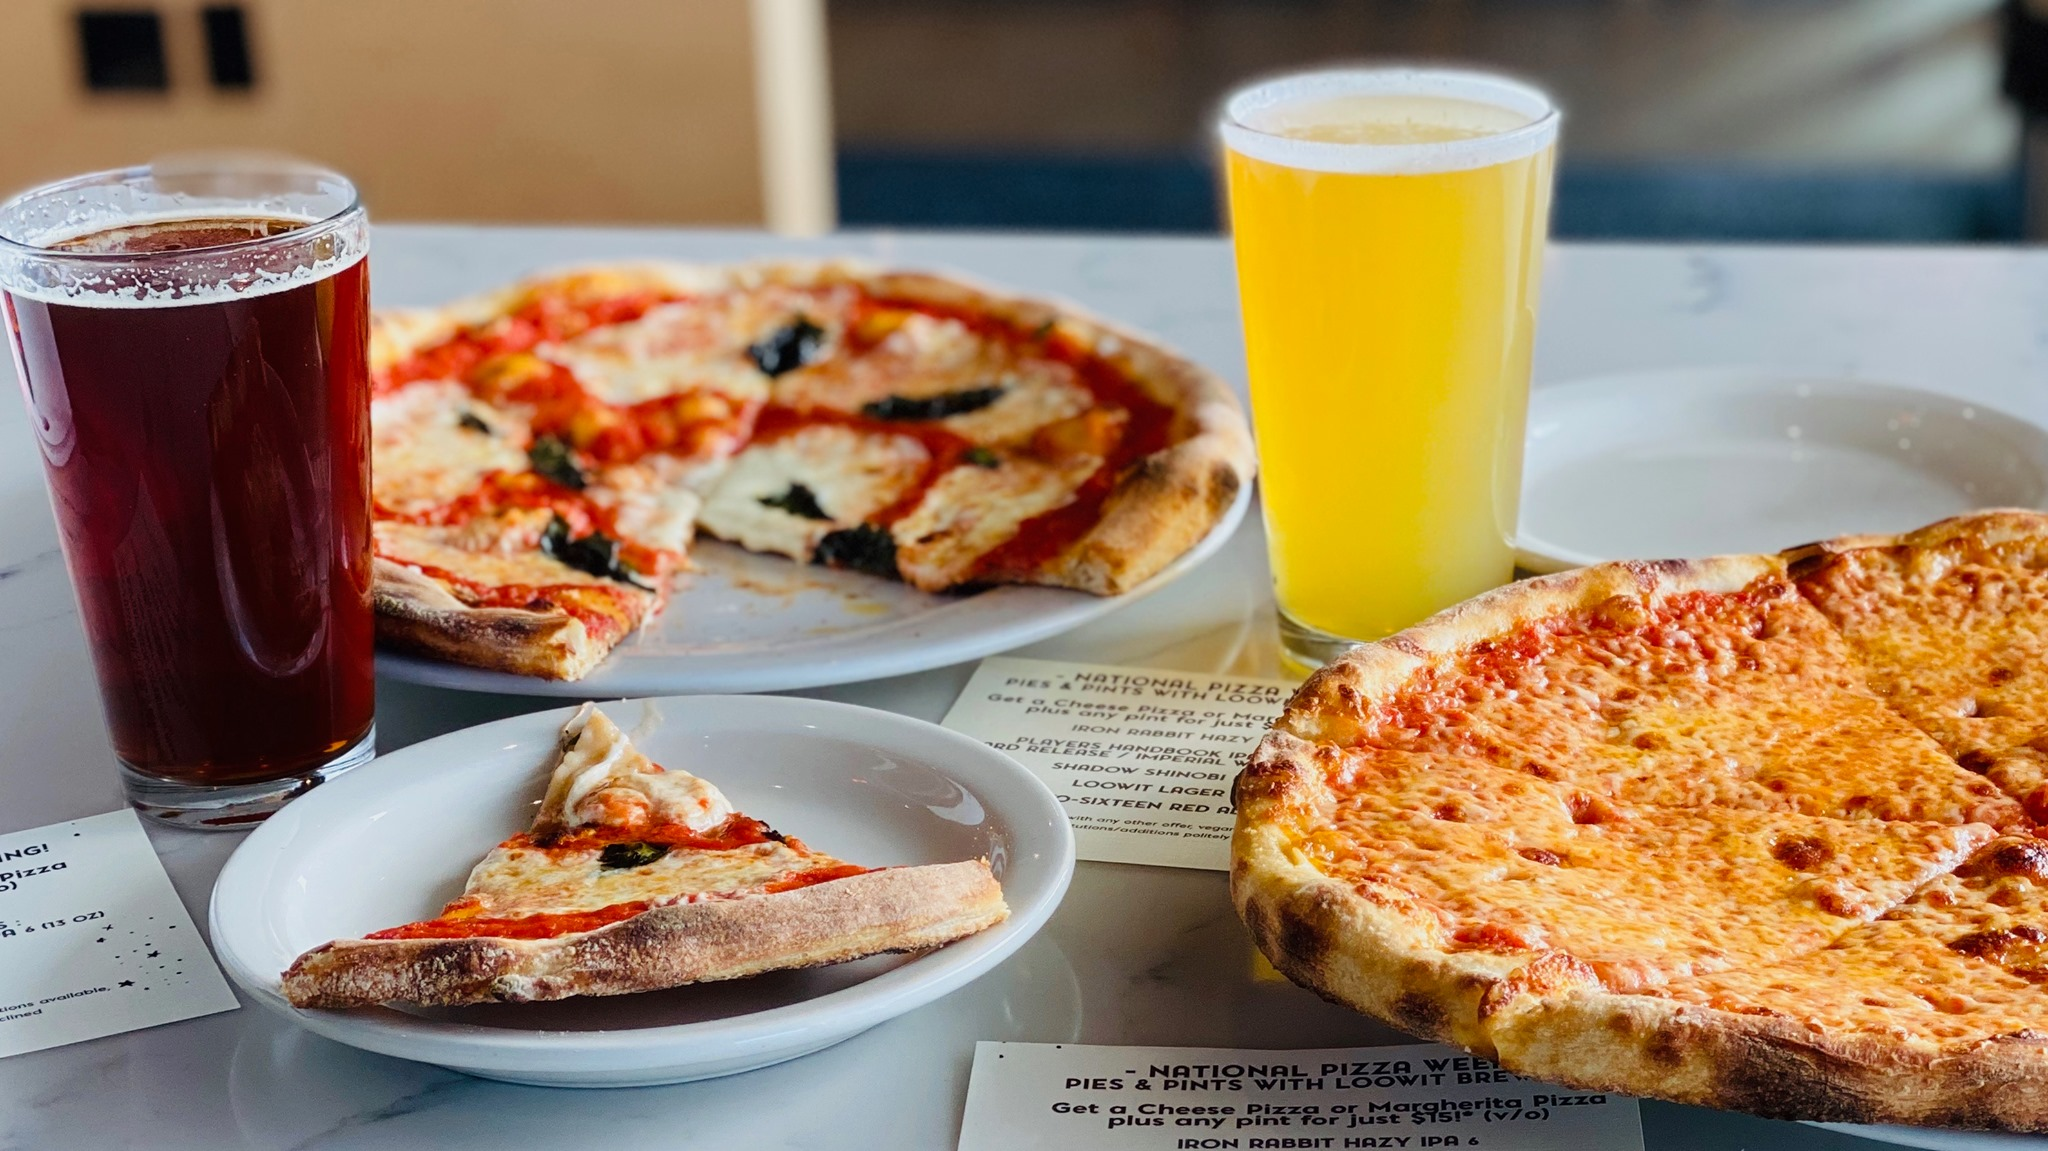 Its 2020 National Pizza Week and Rally Pizza is celebrating the week with pizza and beer from Loowit Brewing. (image courtesy of Rally Pizza)